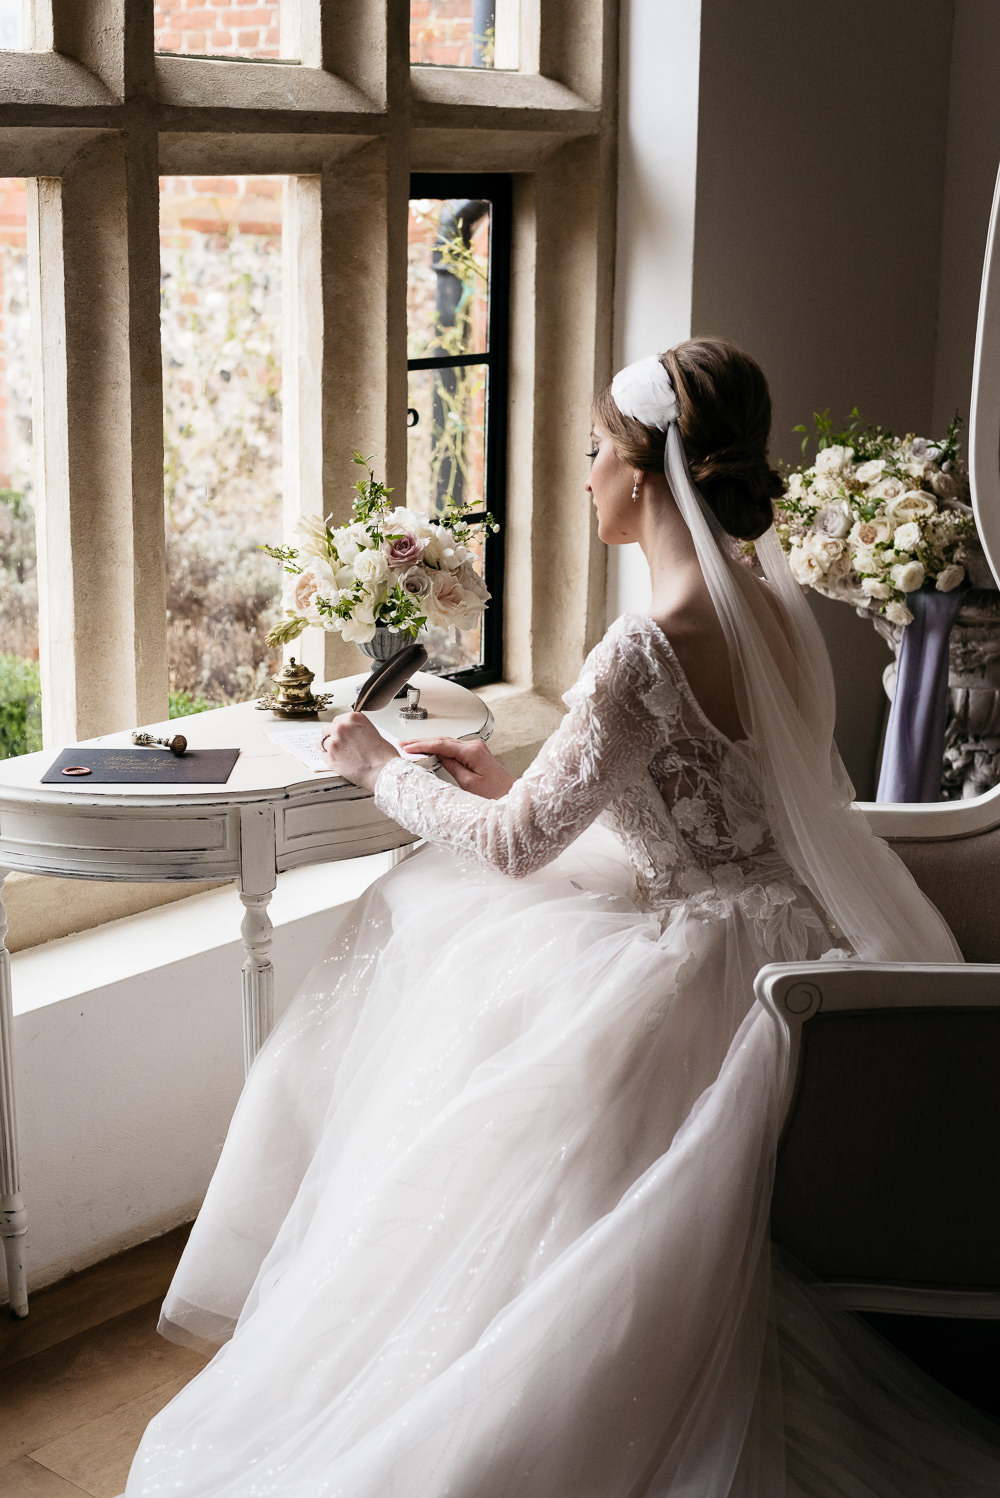 Dress Gown Bride Bridal Sparkly Train Long Sleeves Swan Lake Wedding Ideas Salsabil Morrison